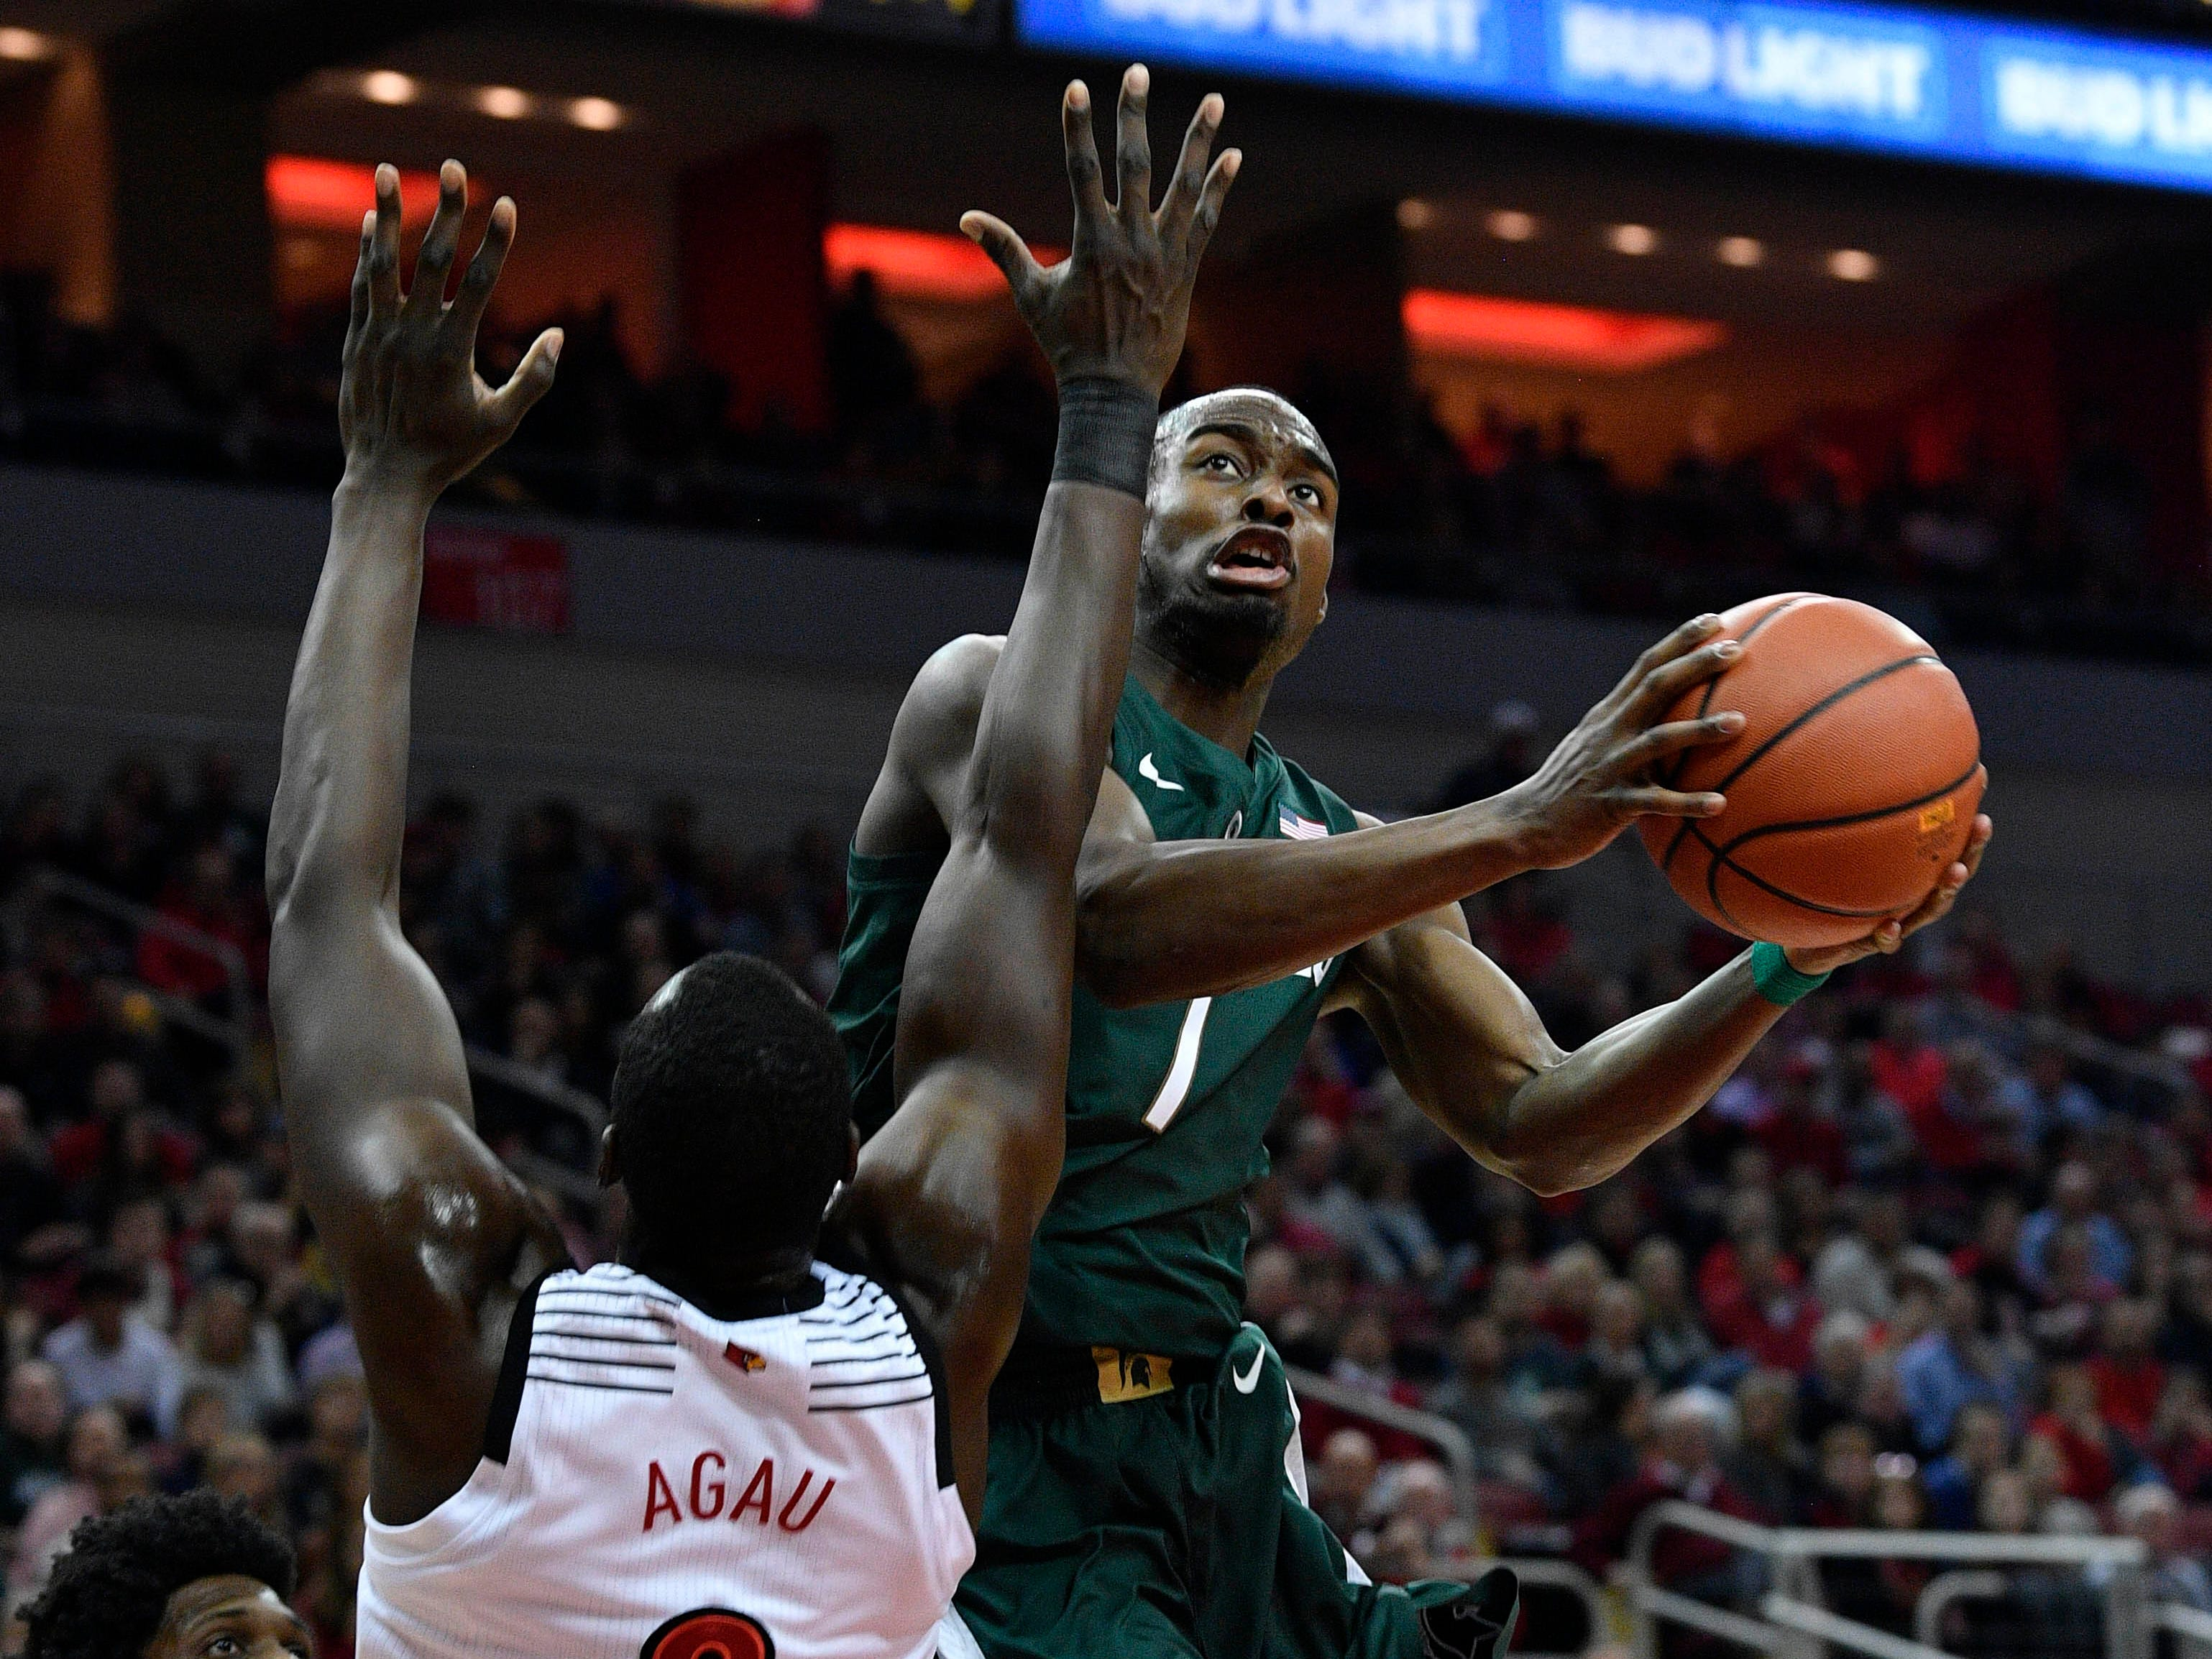 Michigan State Spartans guard Joshua Langford (1) shoots against Louisville Cardinals forward Akoy Agau (0) during the first half at KFC Yum! Center.